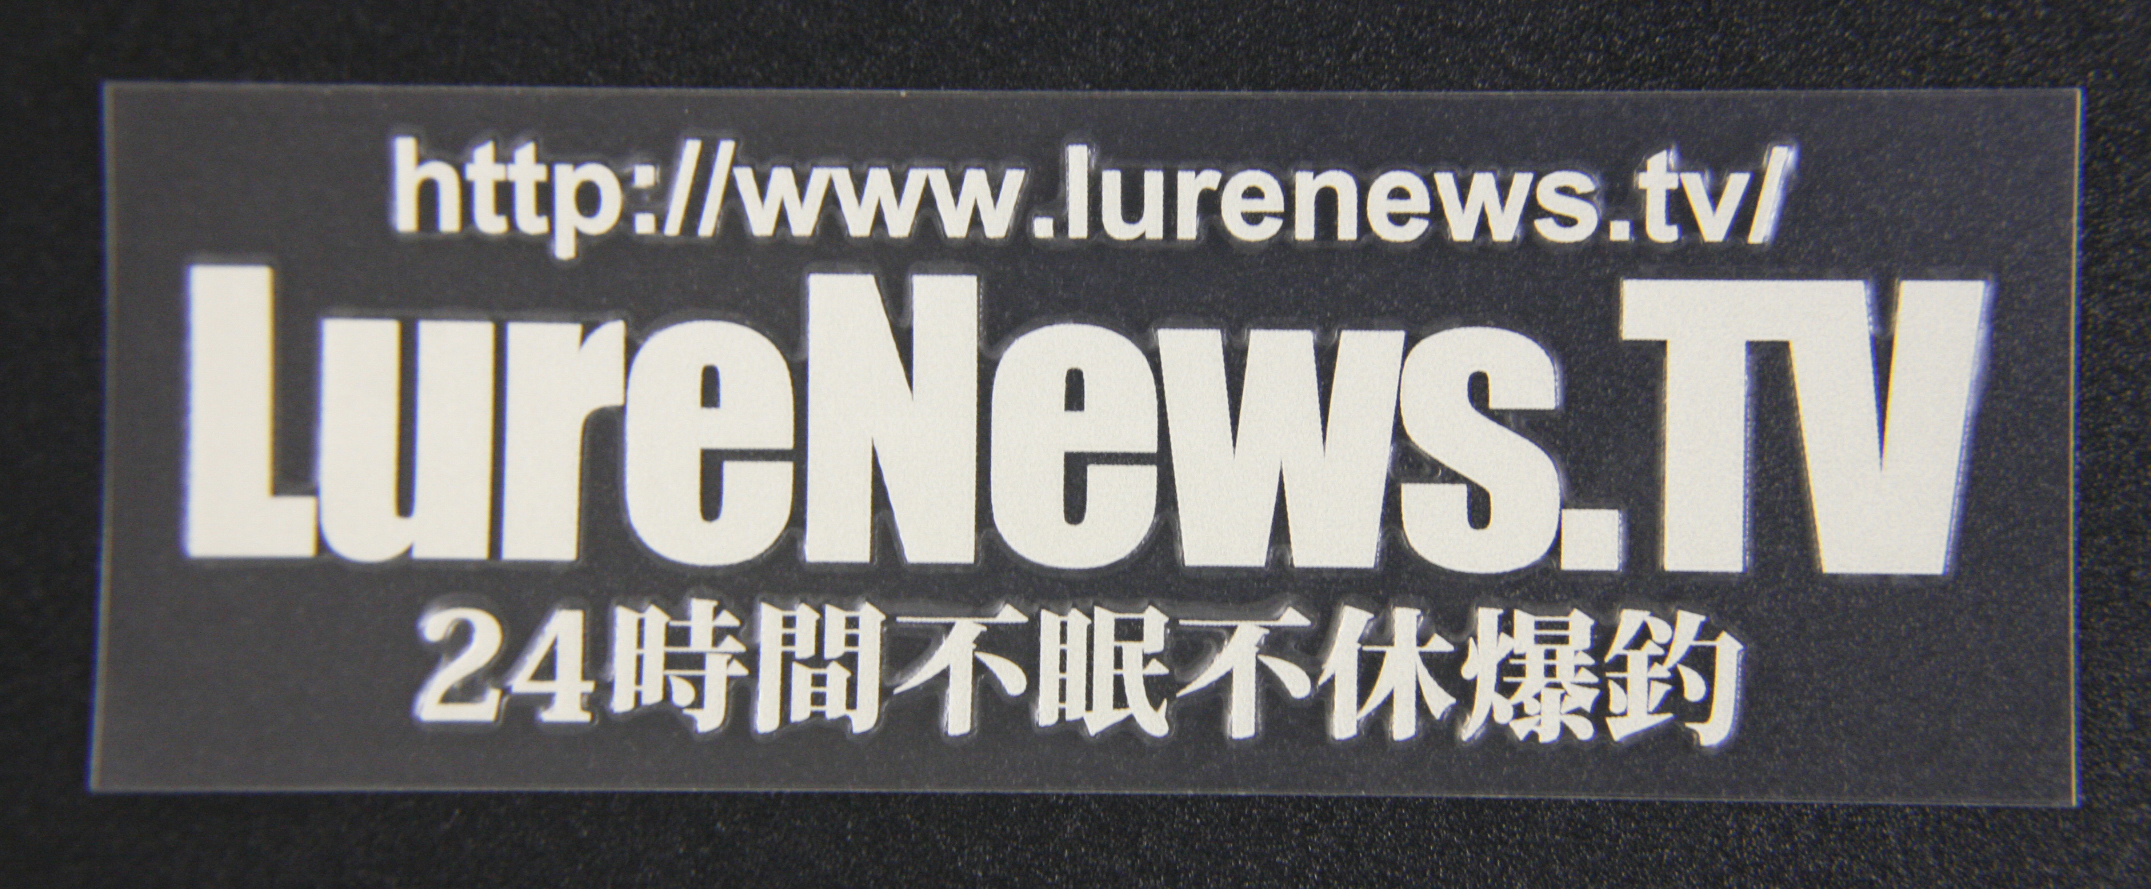 http://lurenews.tv/lurenews_tv_cutting_stickars.jpg